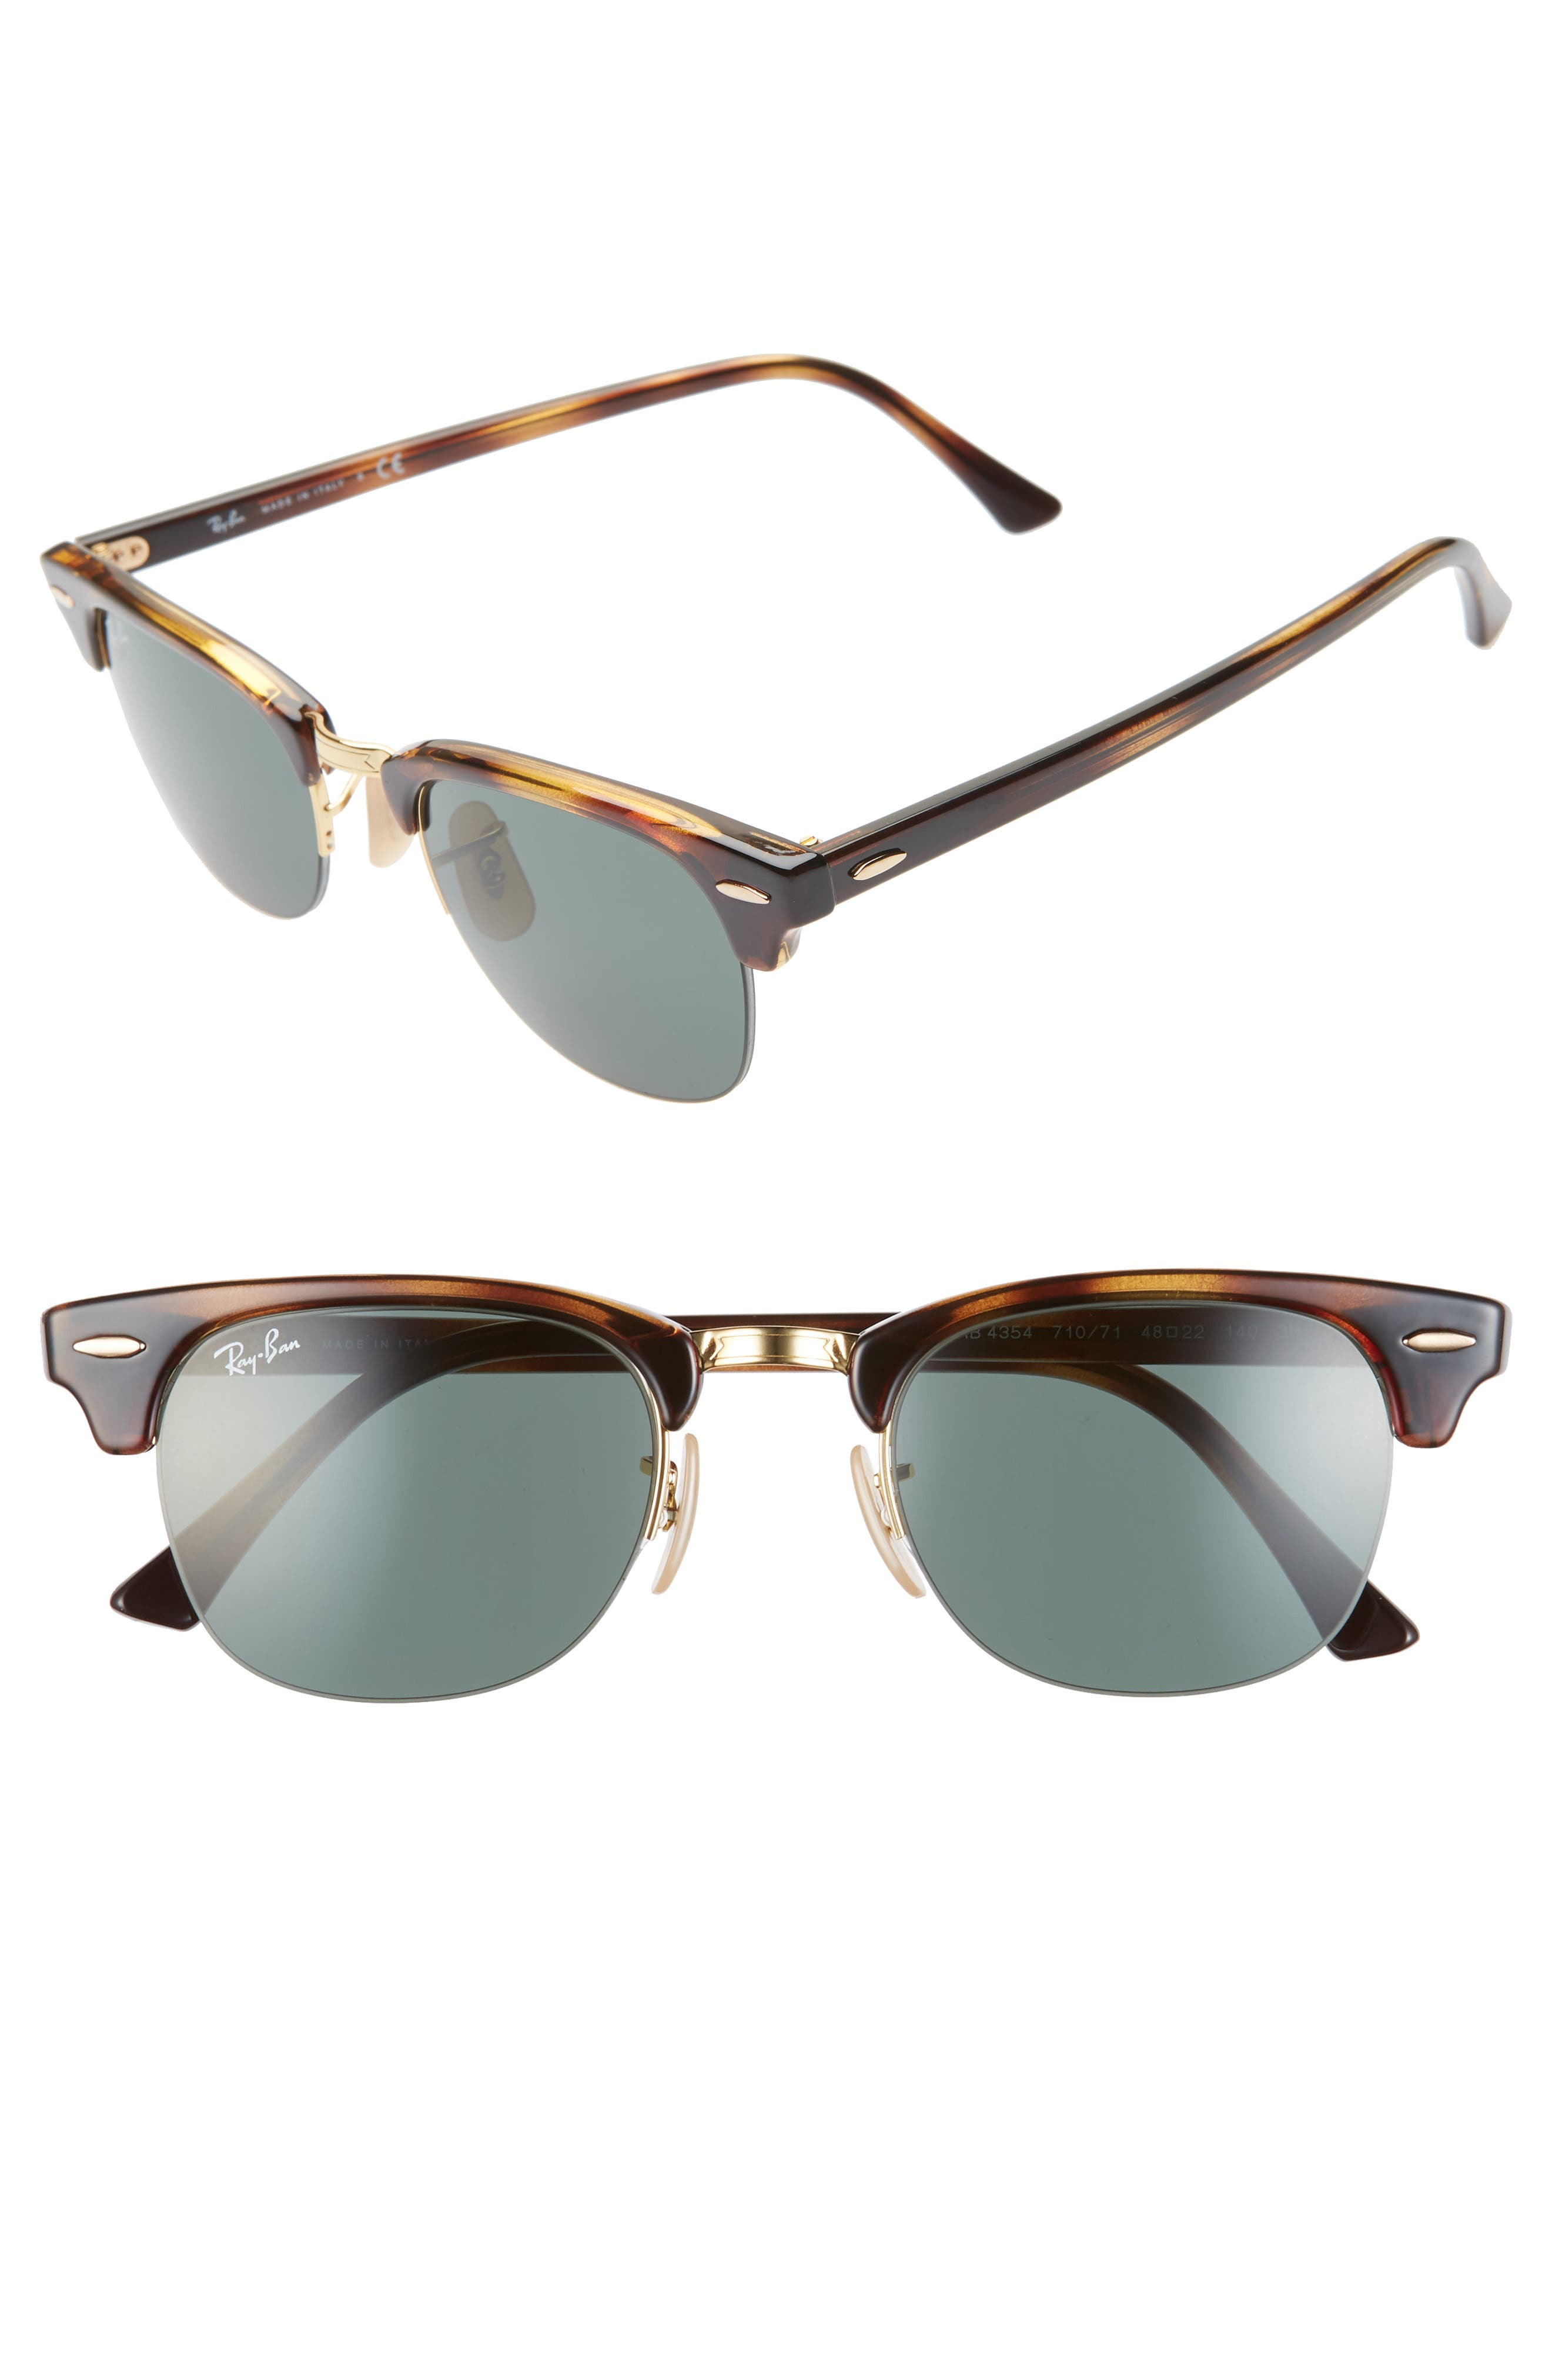 Ray-Ban 4m Clubmaster Sunglasses - Havana/ Gold Solid